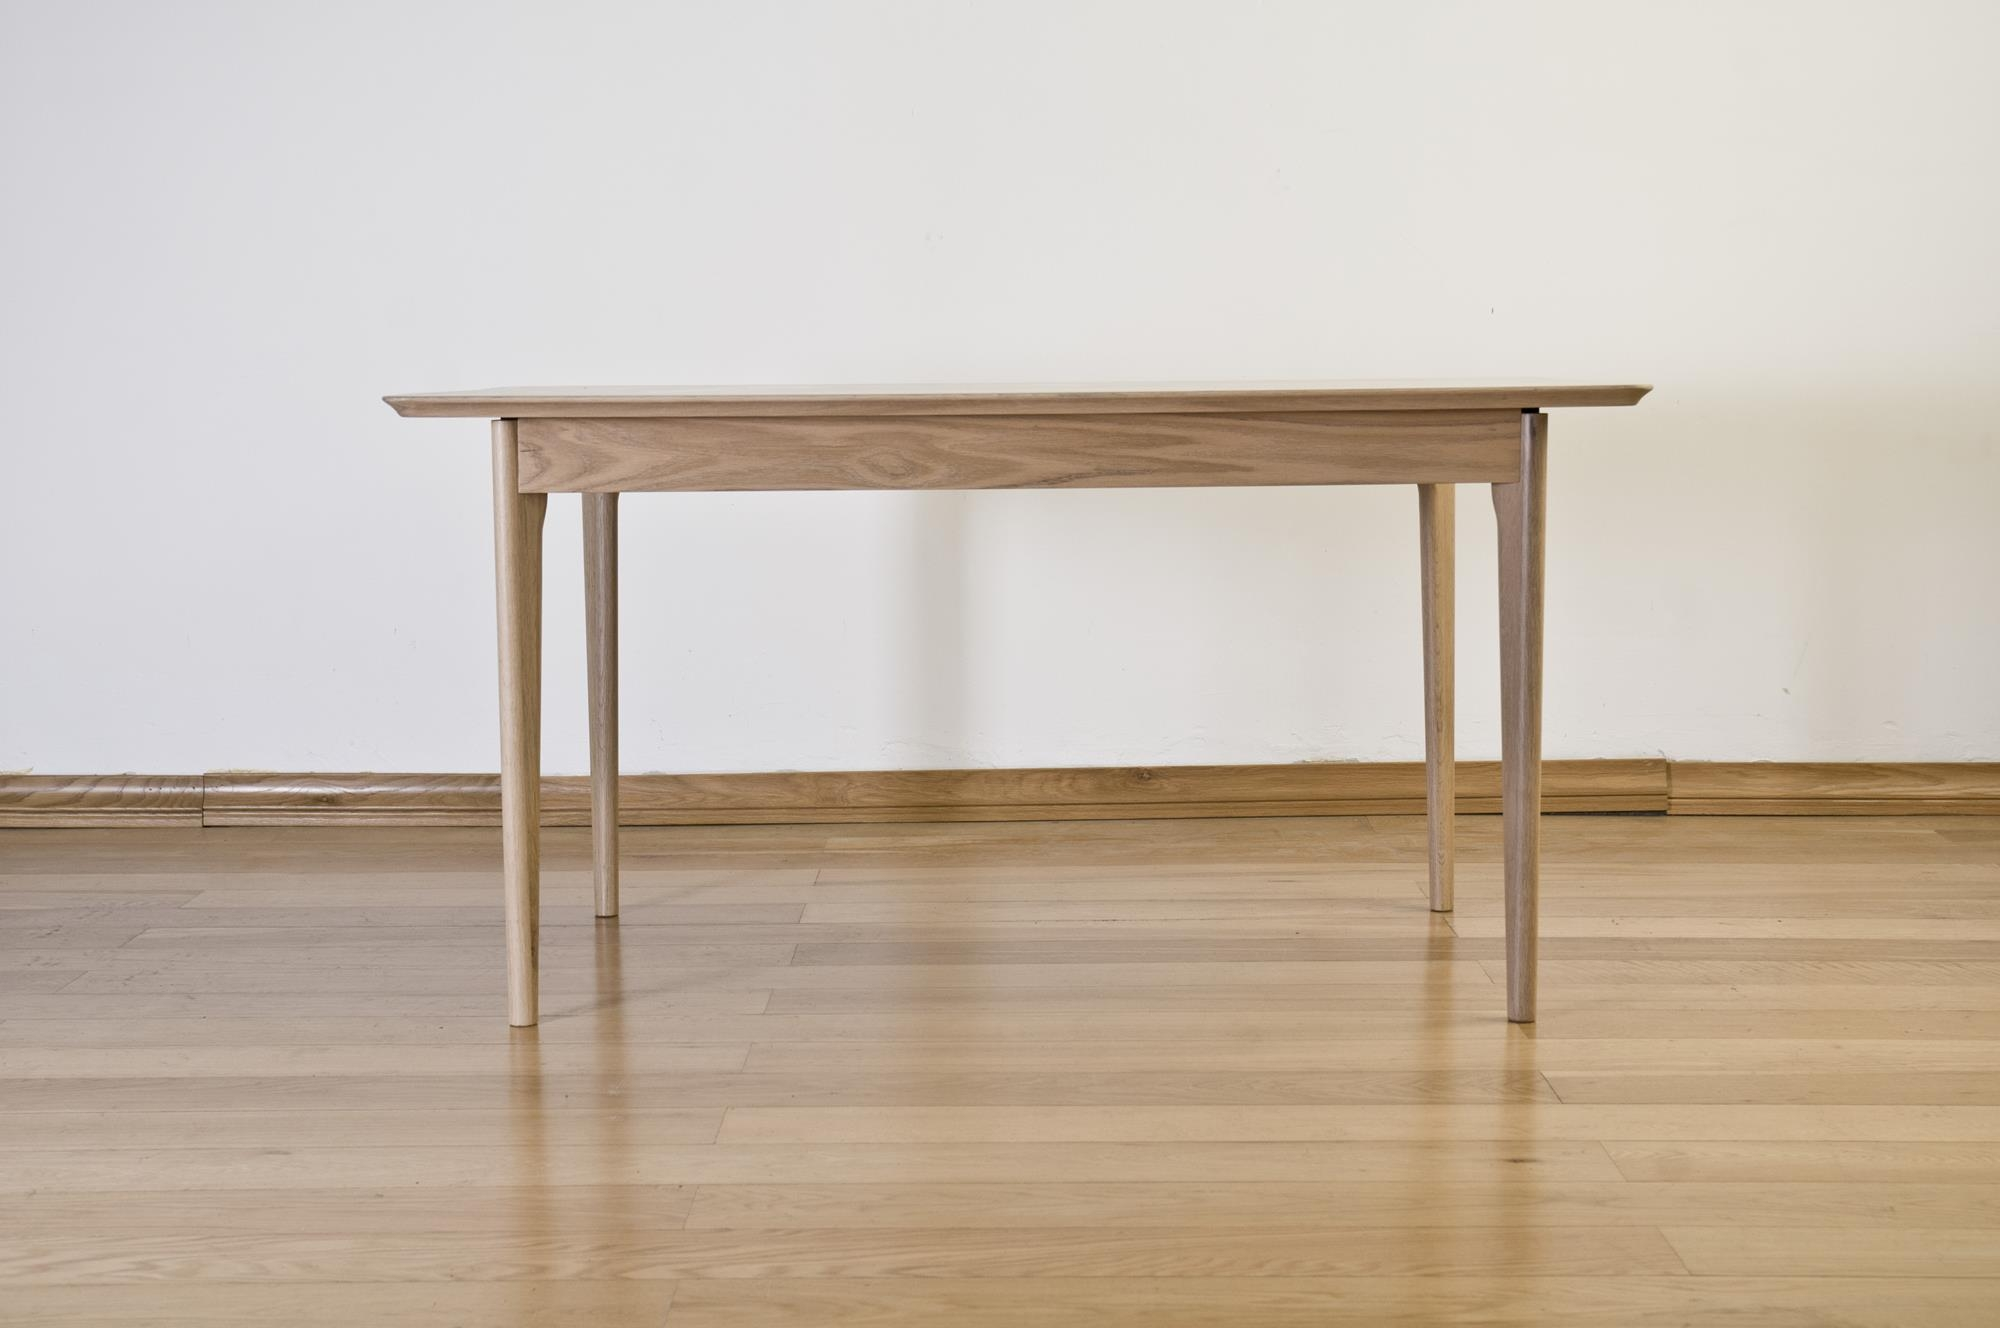 Sorrento Solid Oak Dining Table - 150cm Rectangualr Fixed Top